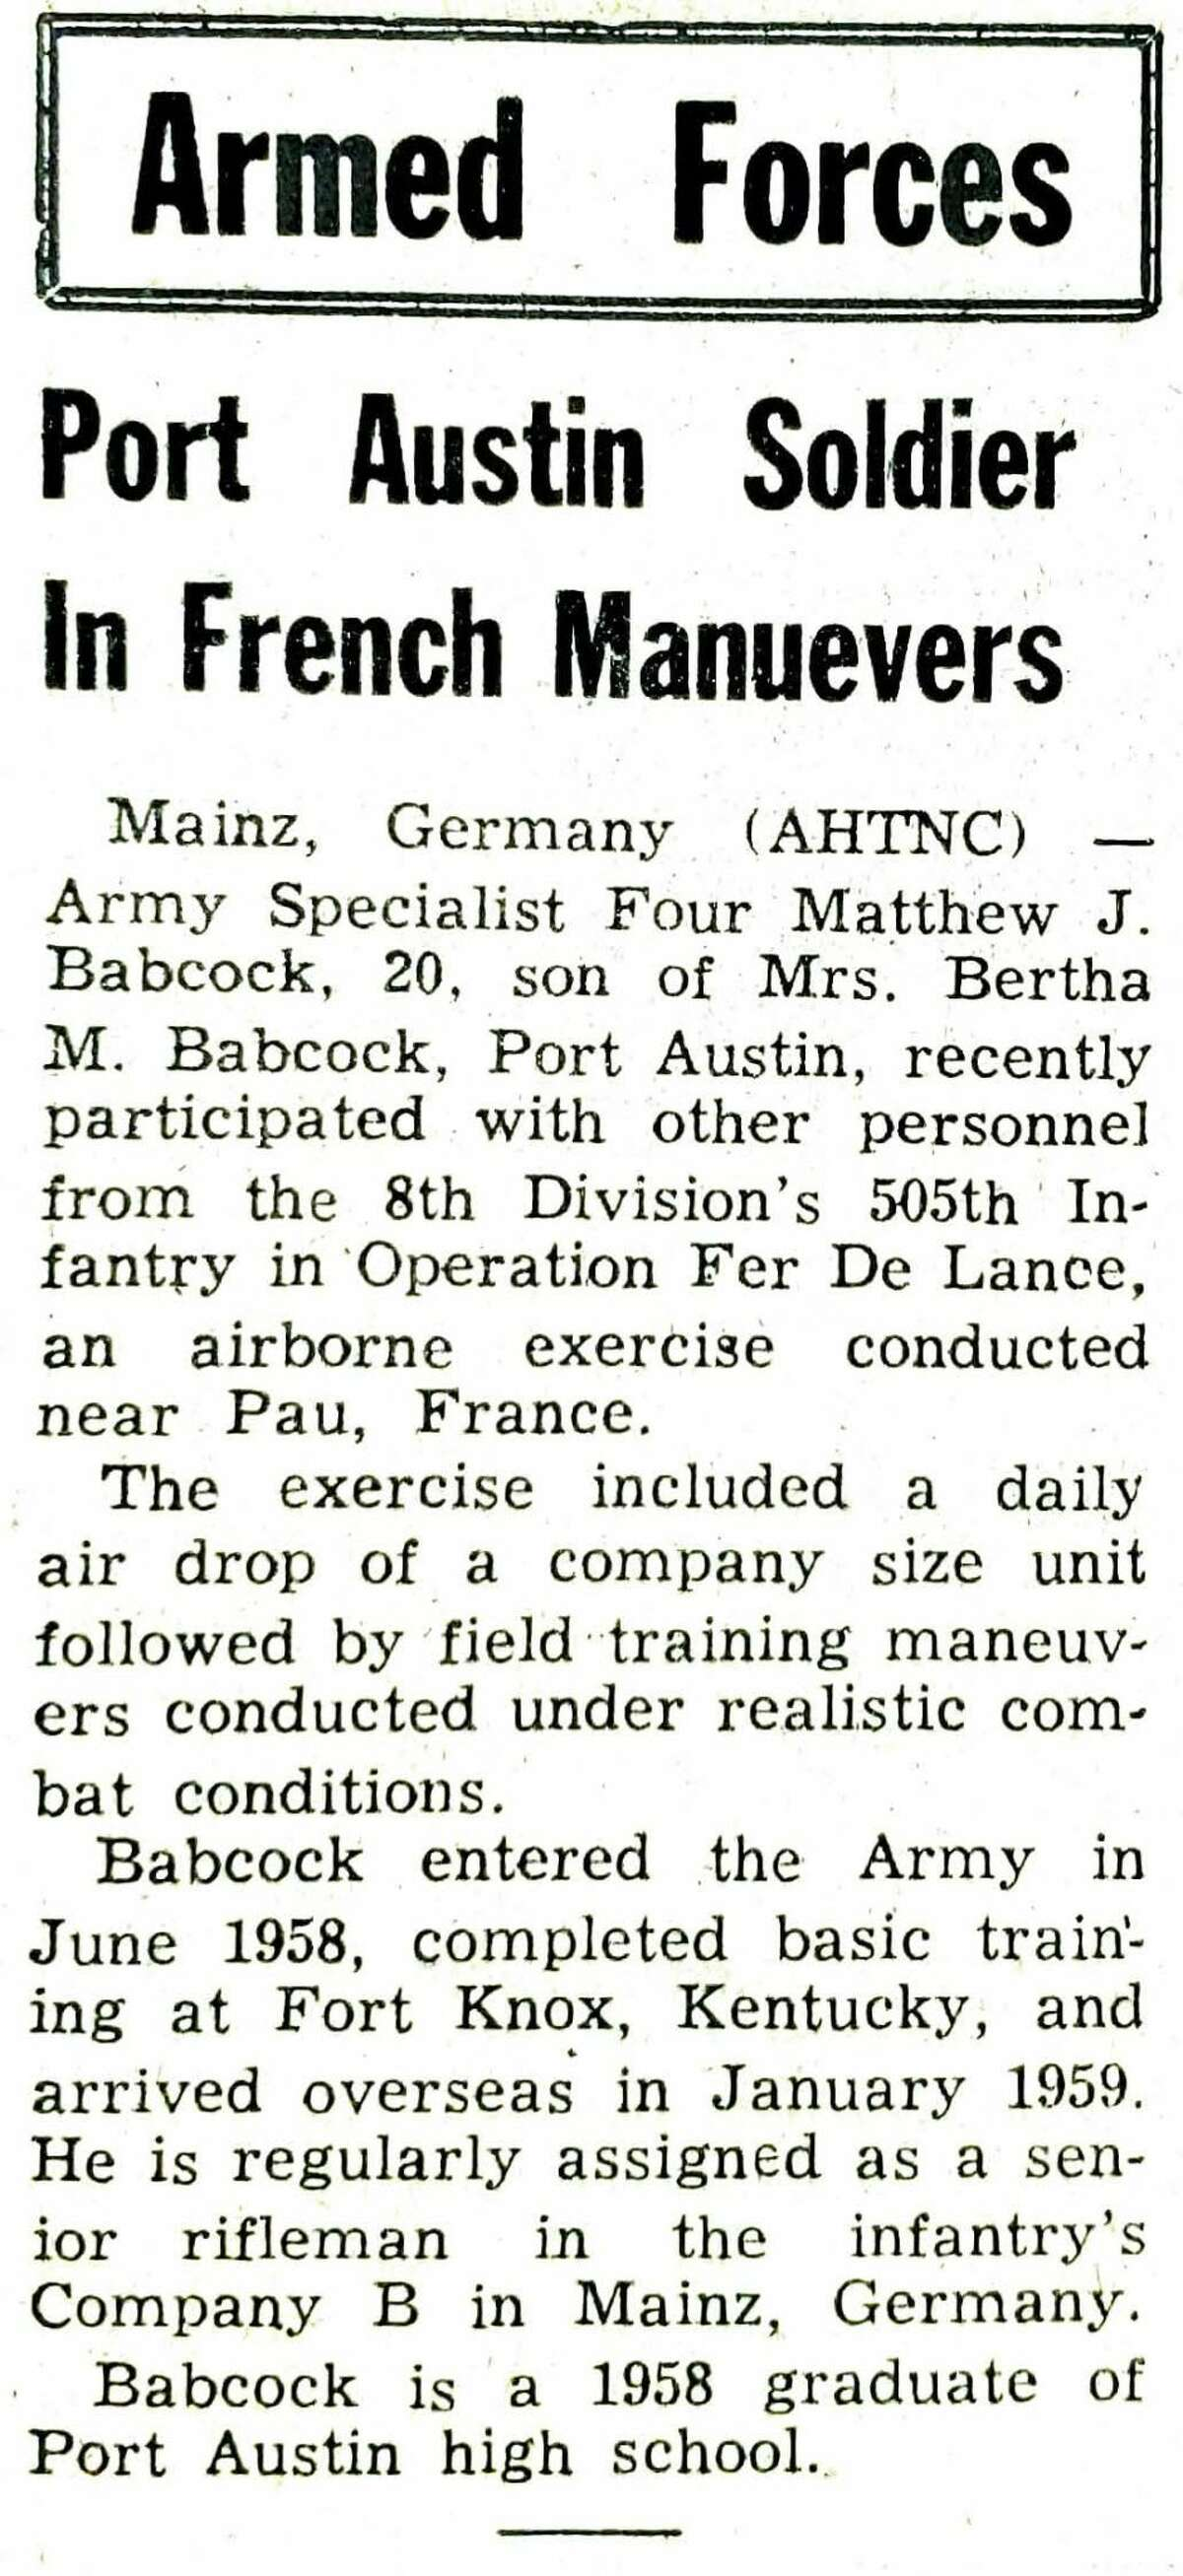 Military news was a mainstay on the front page of the Tribune over the decades, with regular updates on the achievements and happenings of our local soldiers.